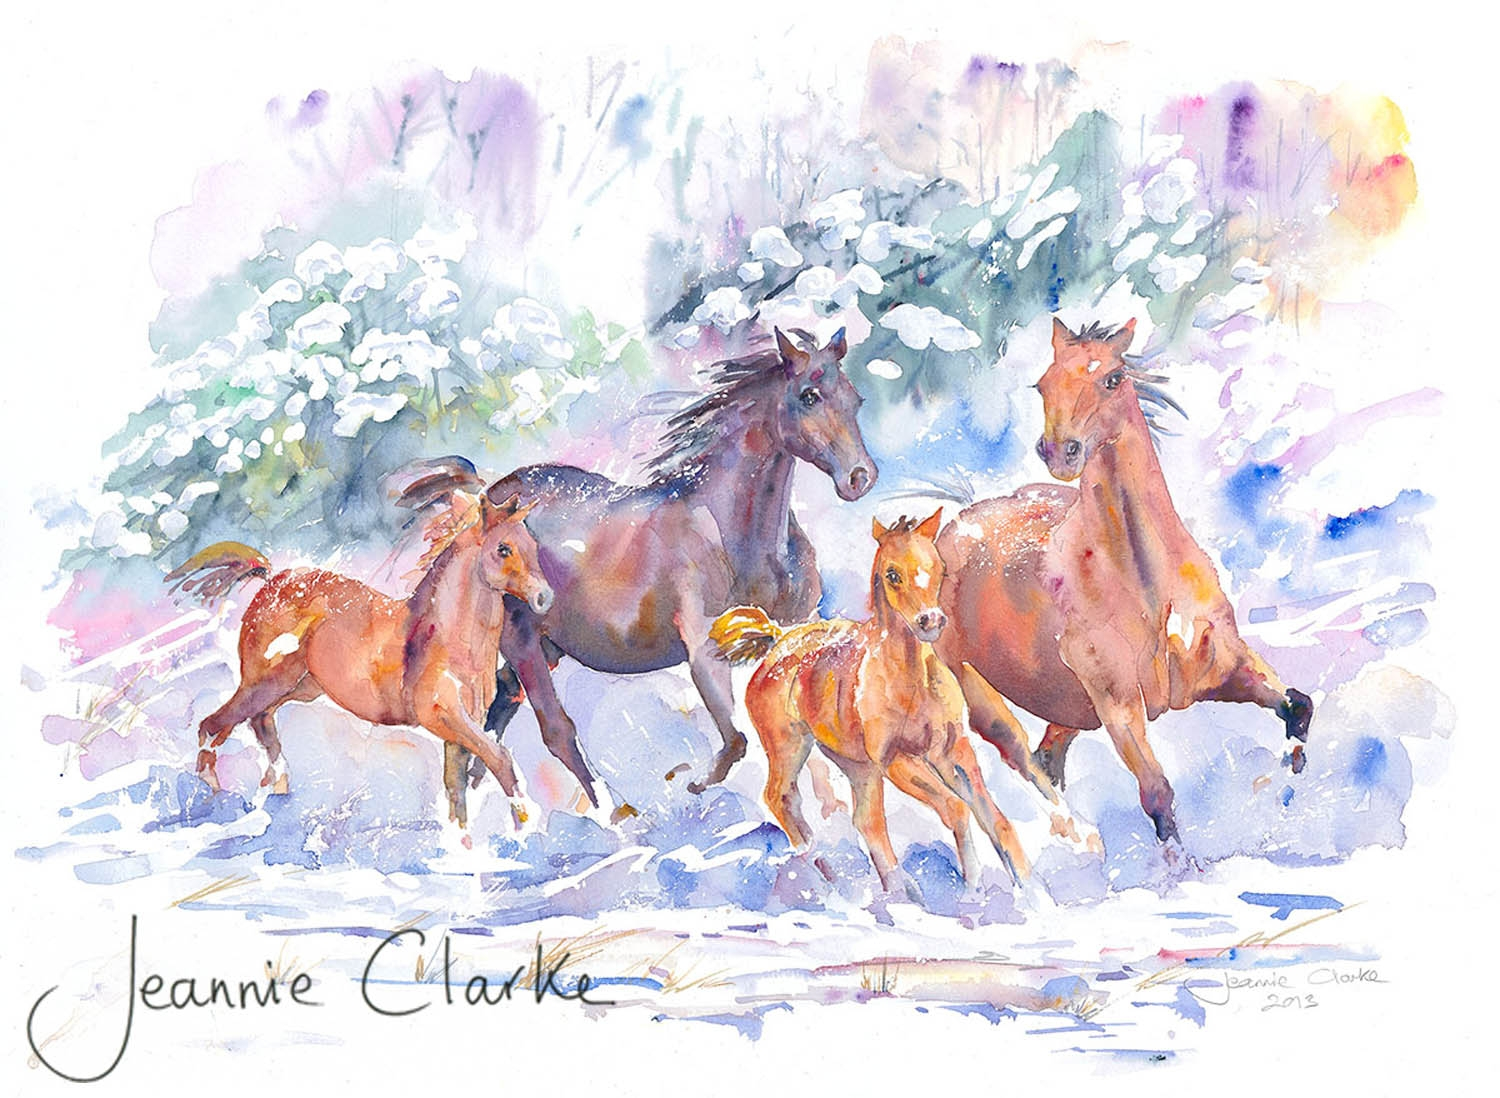 watercolour - part of the Christmas 2013 collection original available - also limited edition fine art print and greeting card